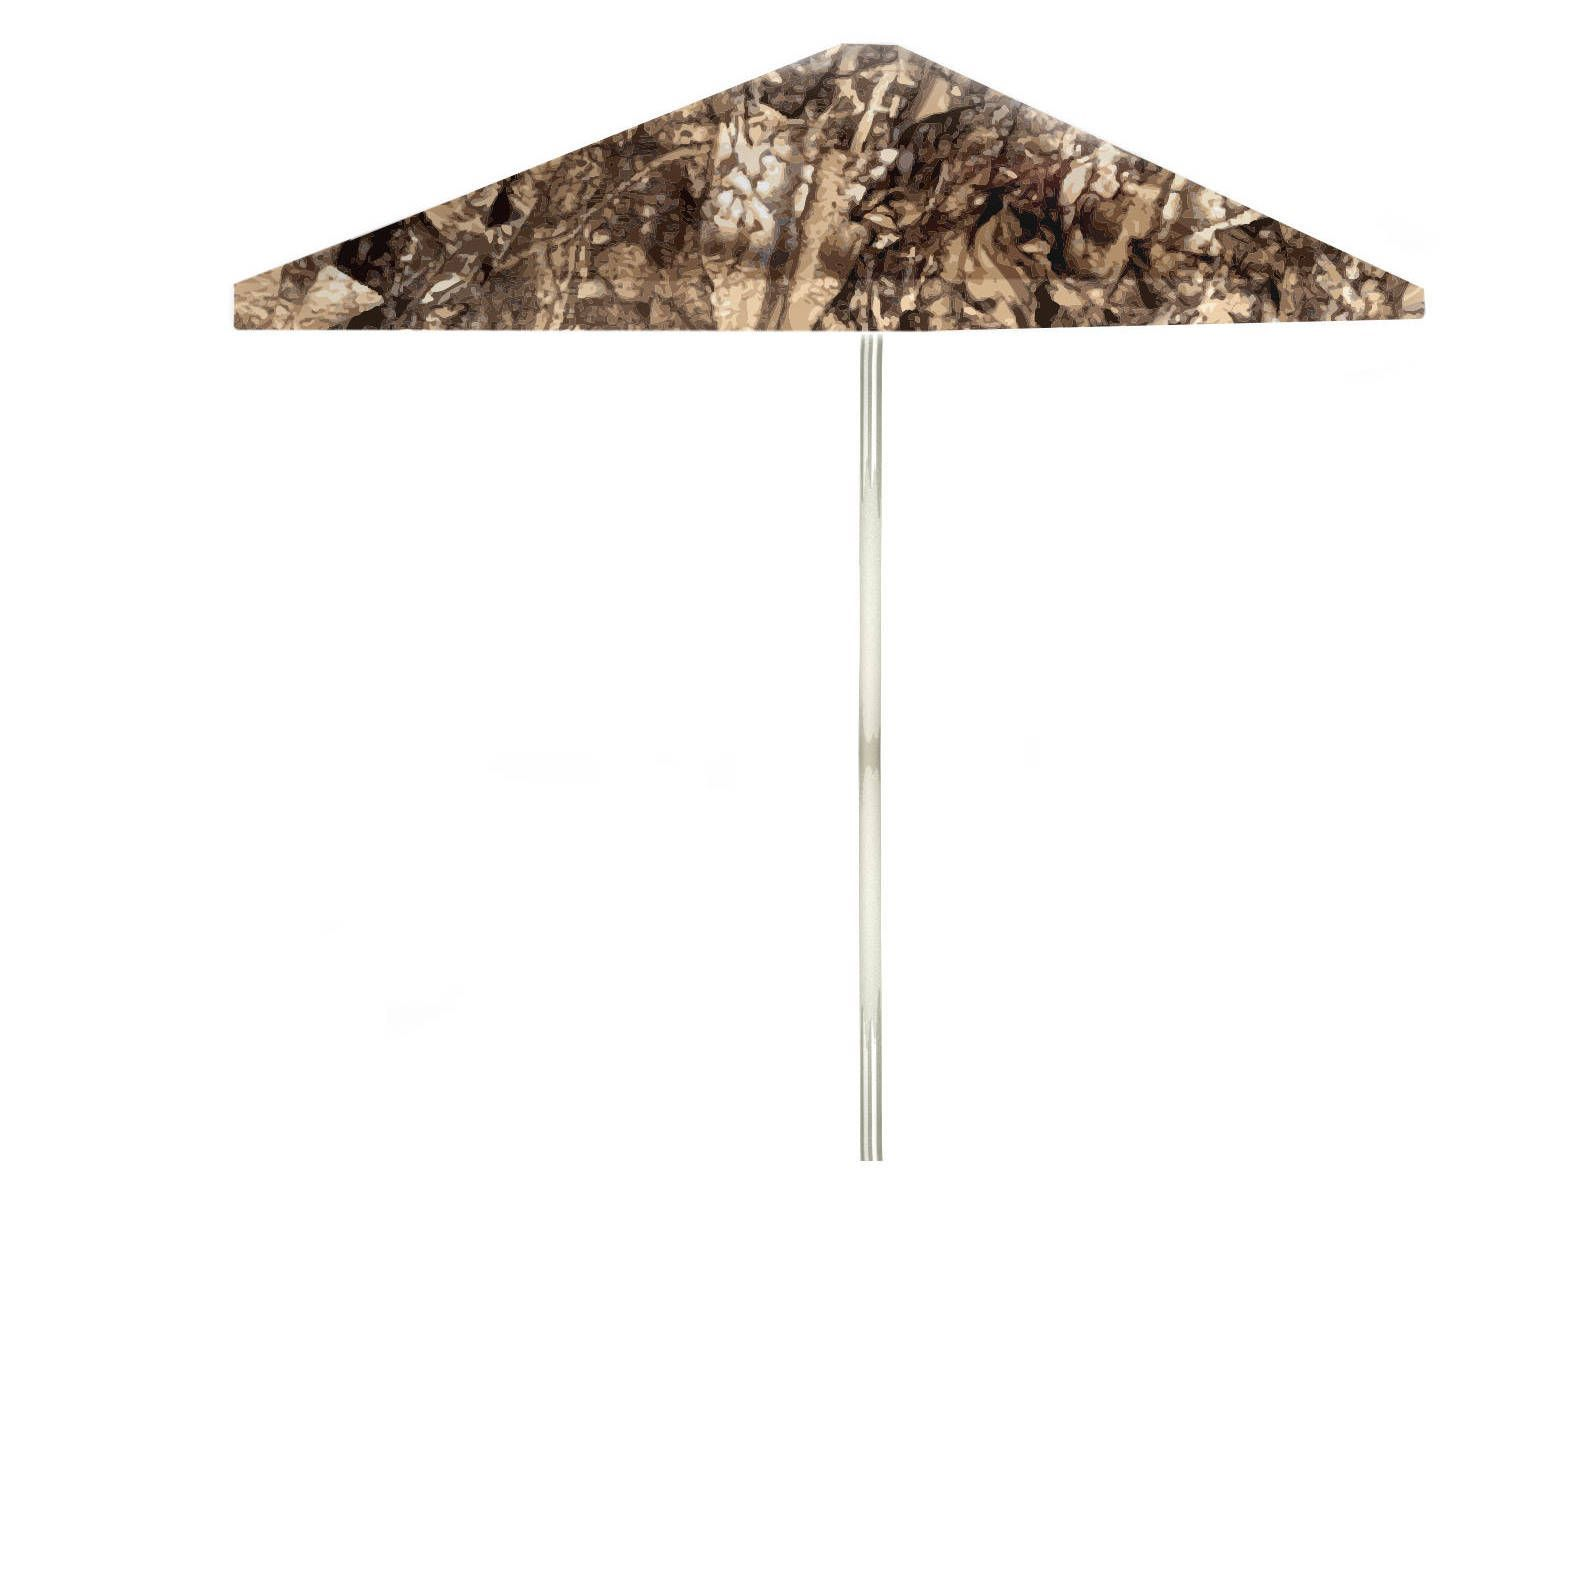 best of times camouflage 8 foot patio square umbrella camoflauge